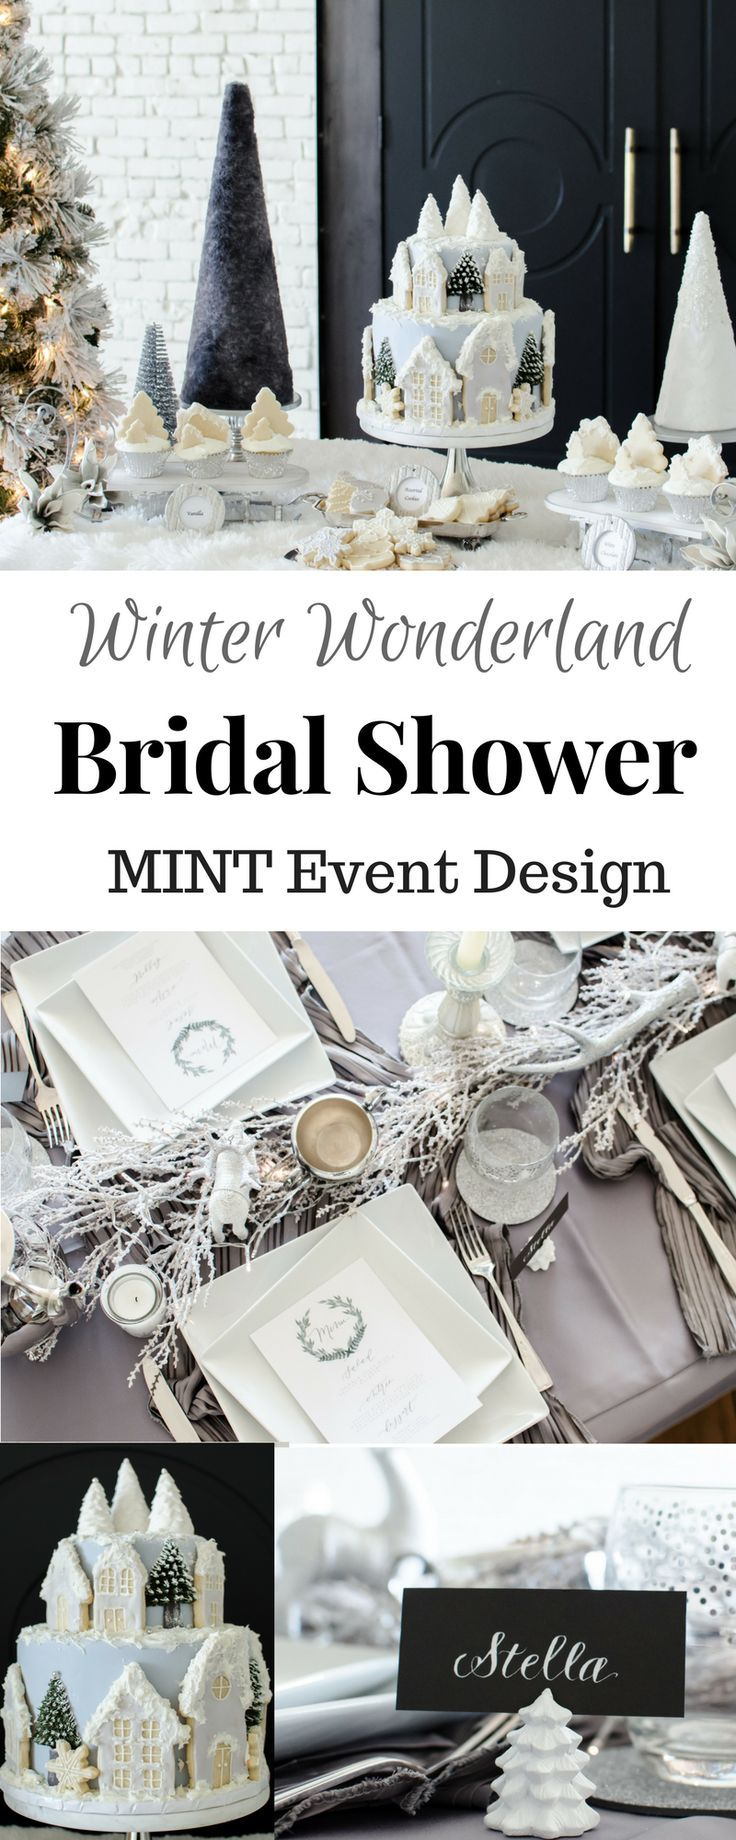 A Winter Wonderland Bridal Shower Inspiration #bridalshowerdecorations